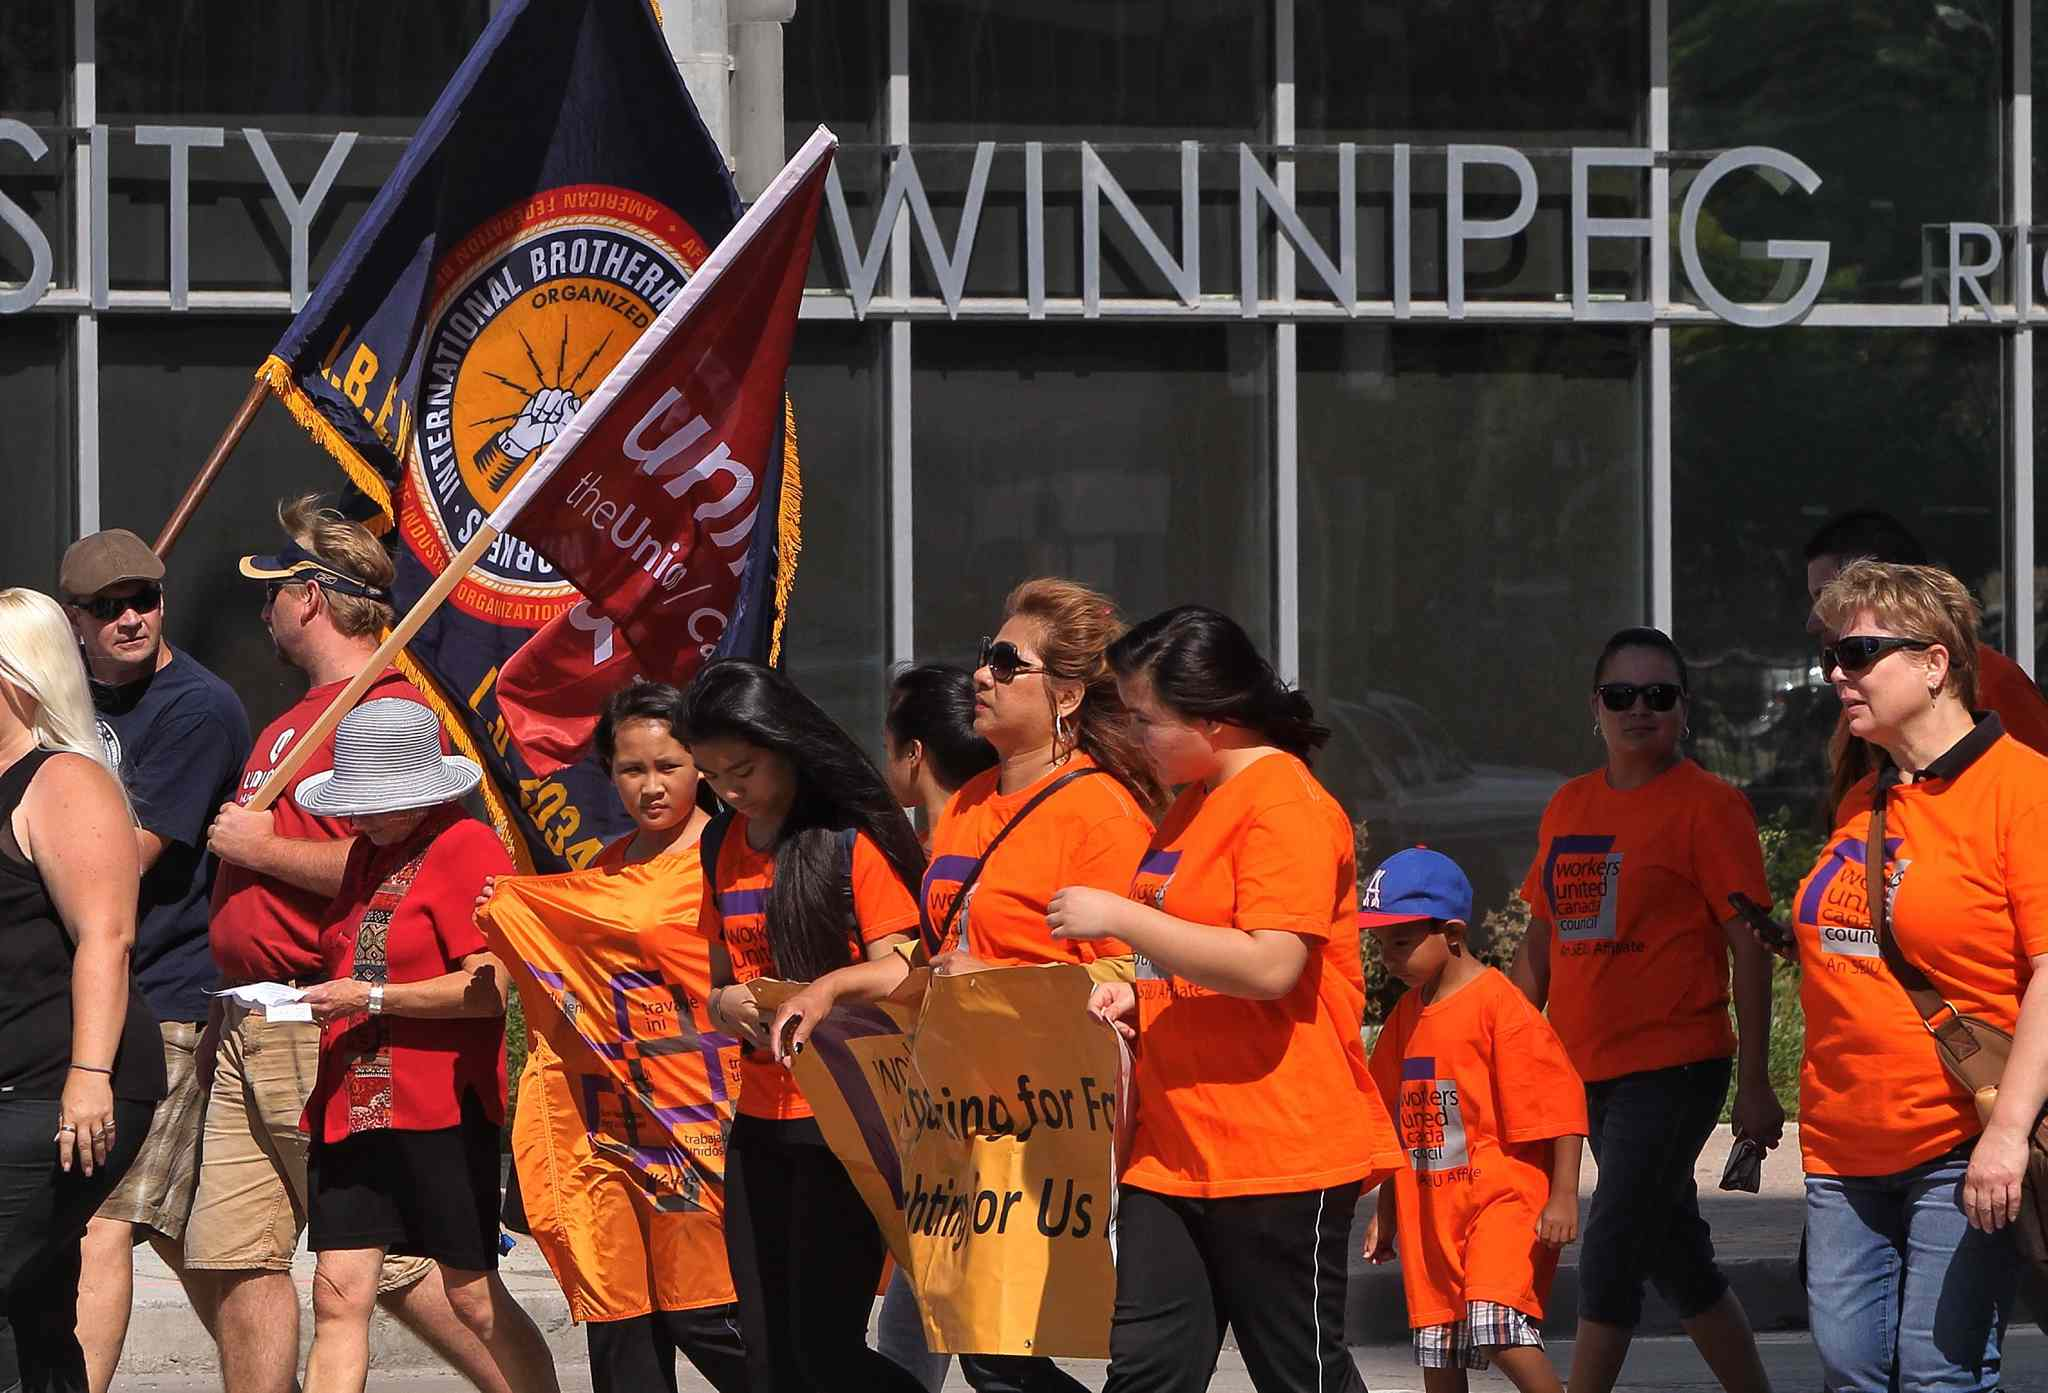 Union members walk along Memorial Boulevard and Portage Avenue towards Vimy Ridge Park during the annual Labour Day March.